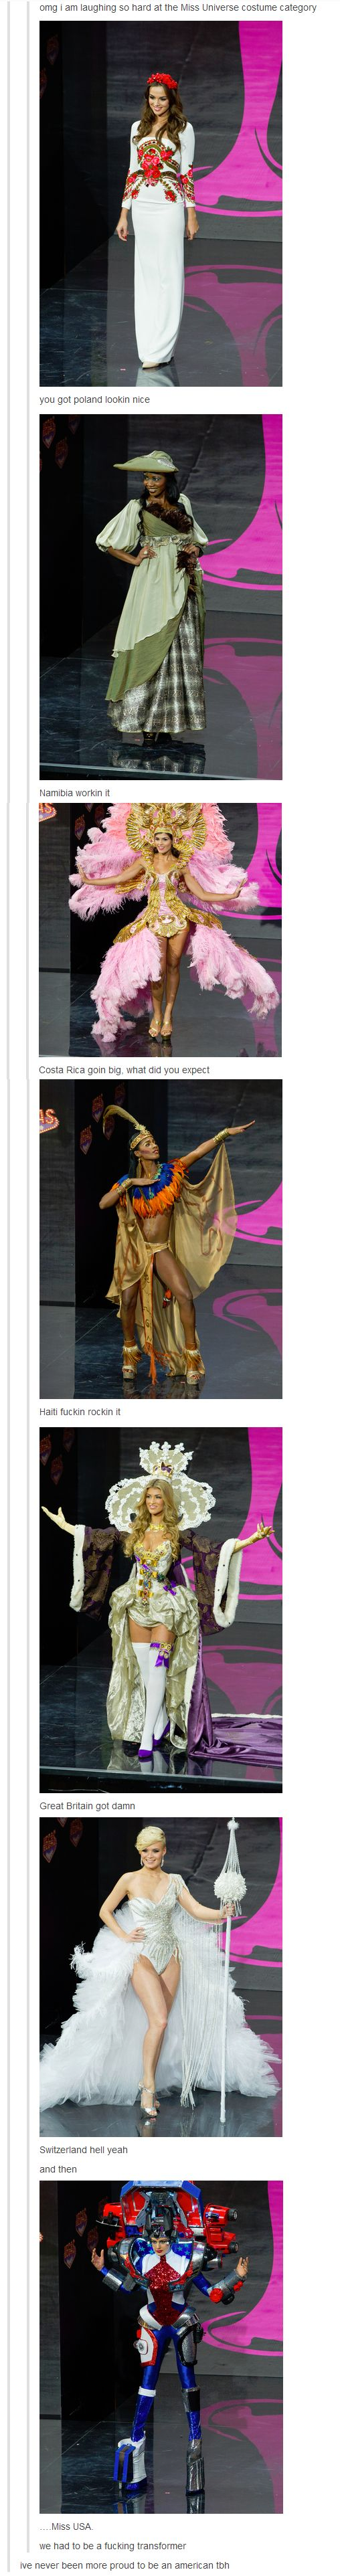 The Sheer Variety of Miss Universe Costumes